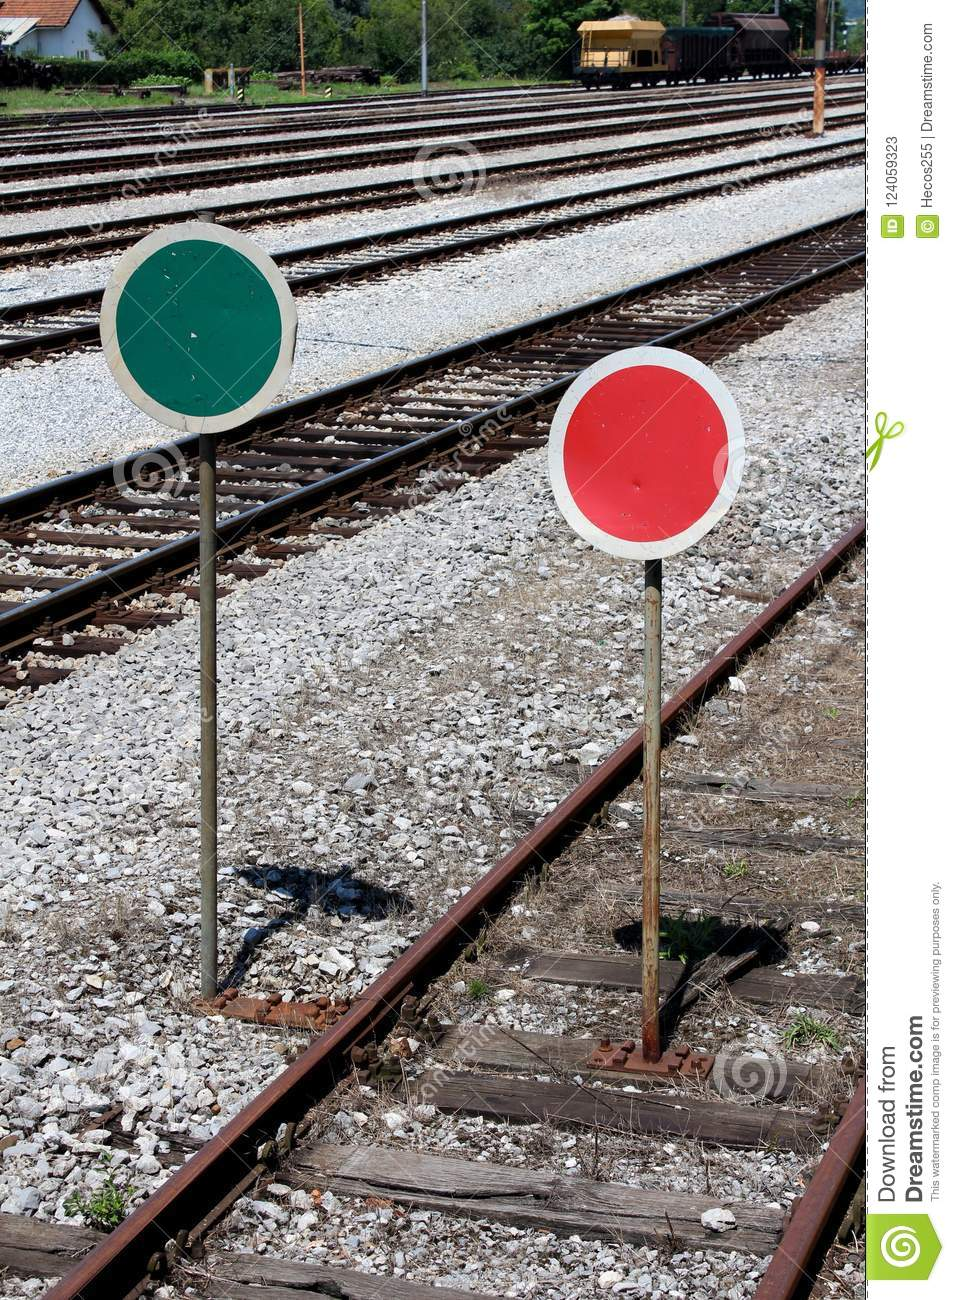 Railway lollipop like signs in green-white and red-white colors mounted on rusted metal poles